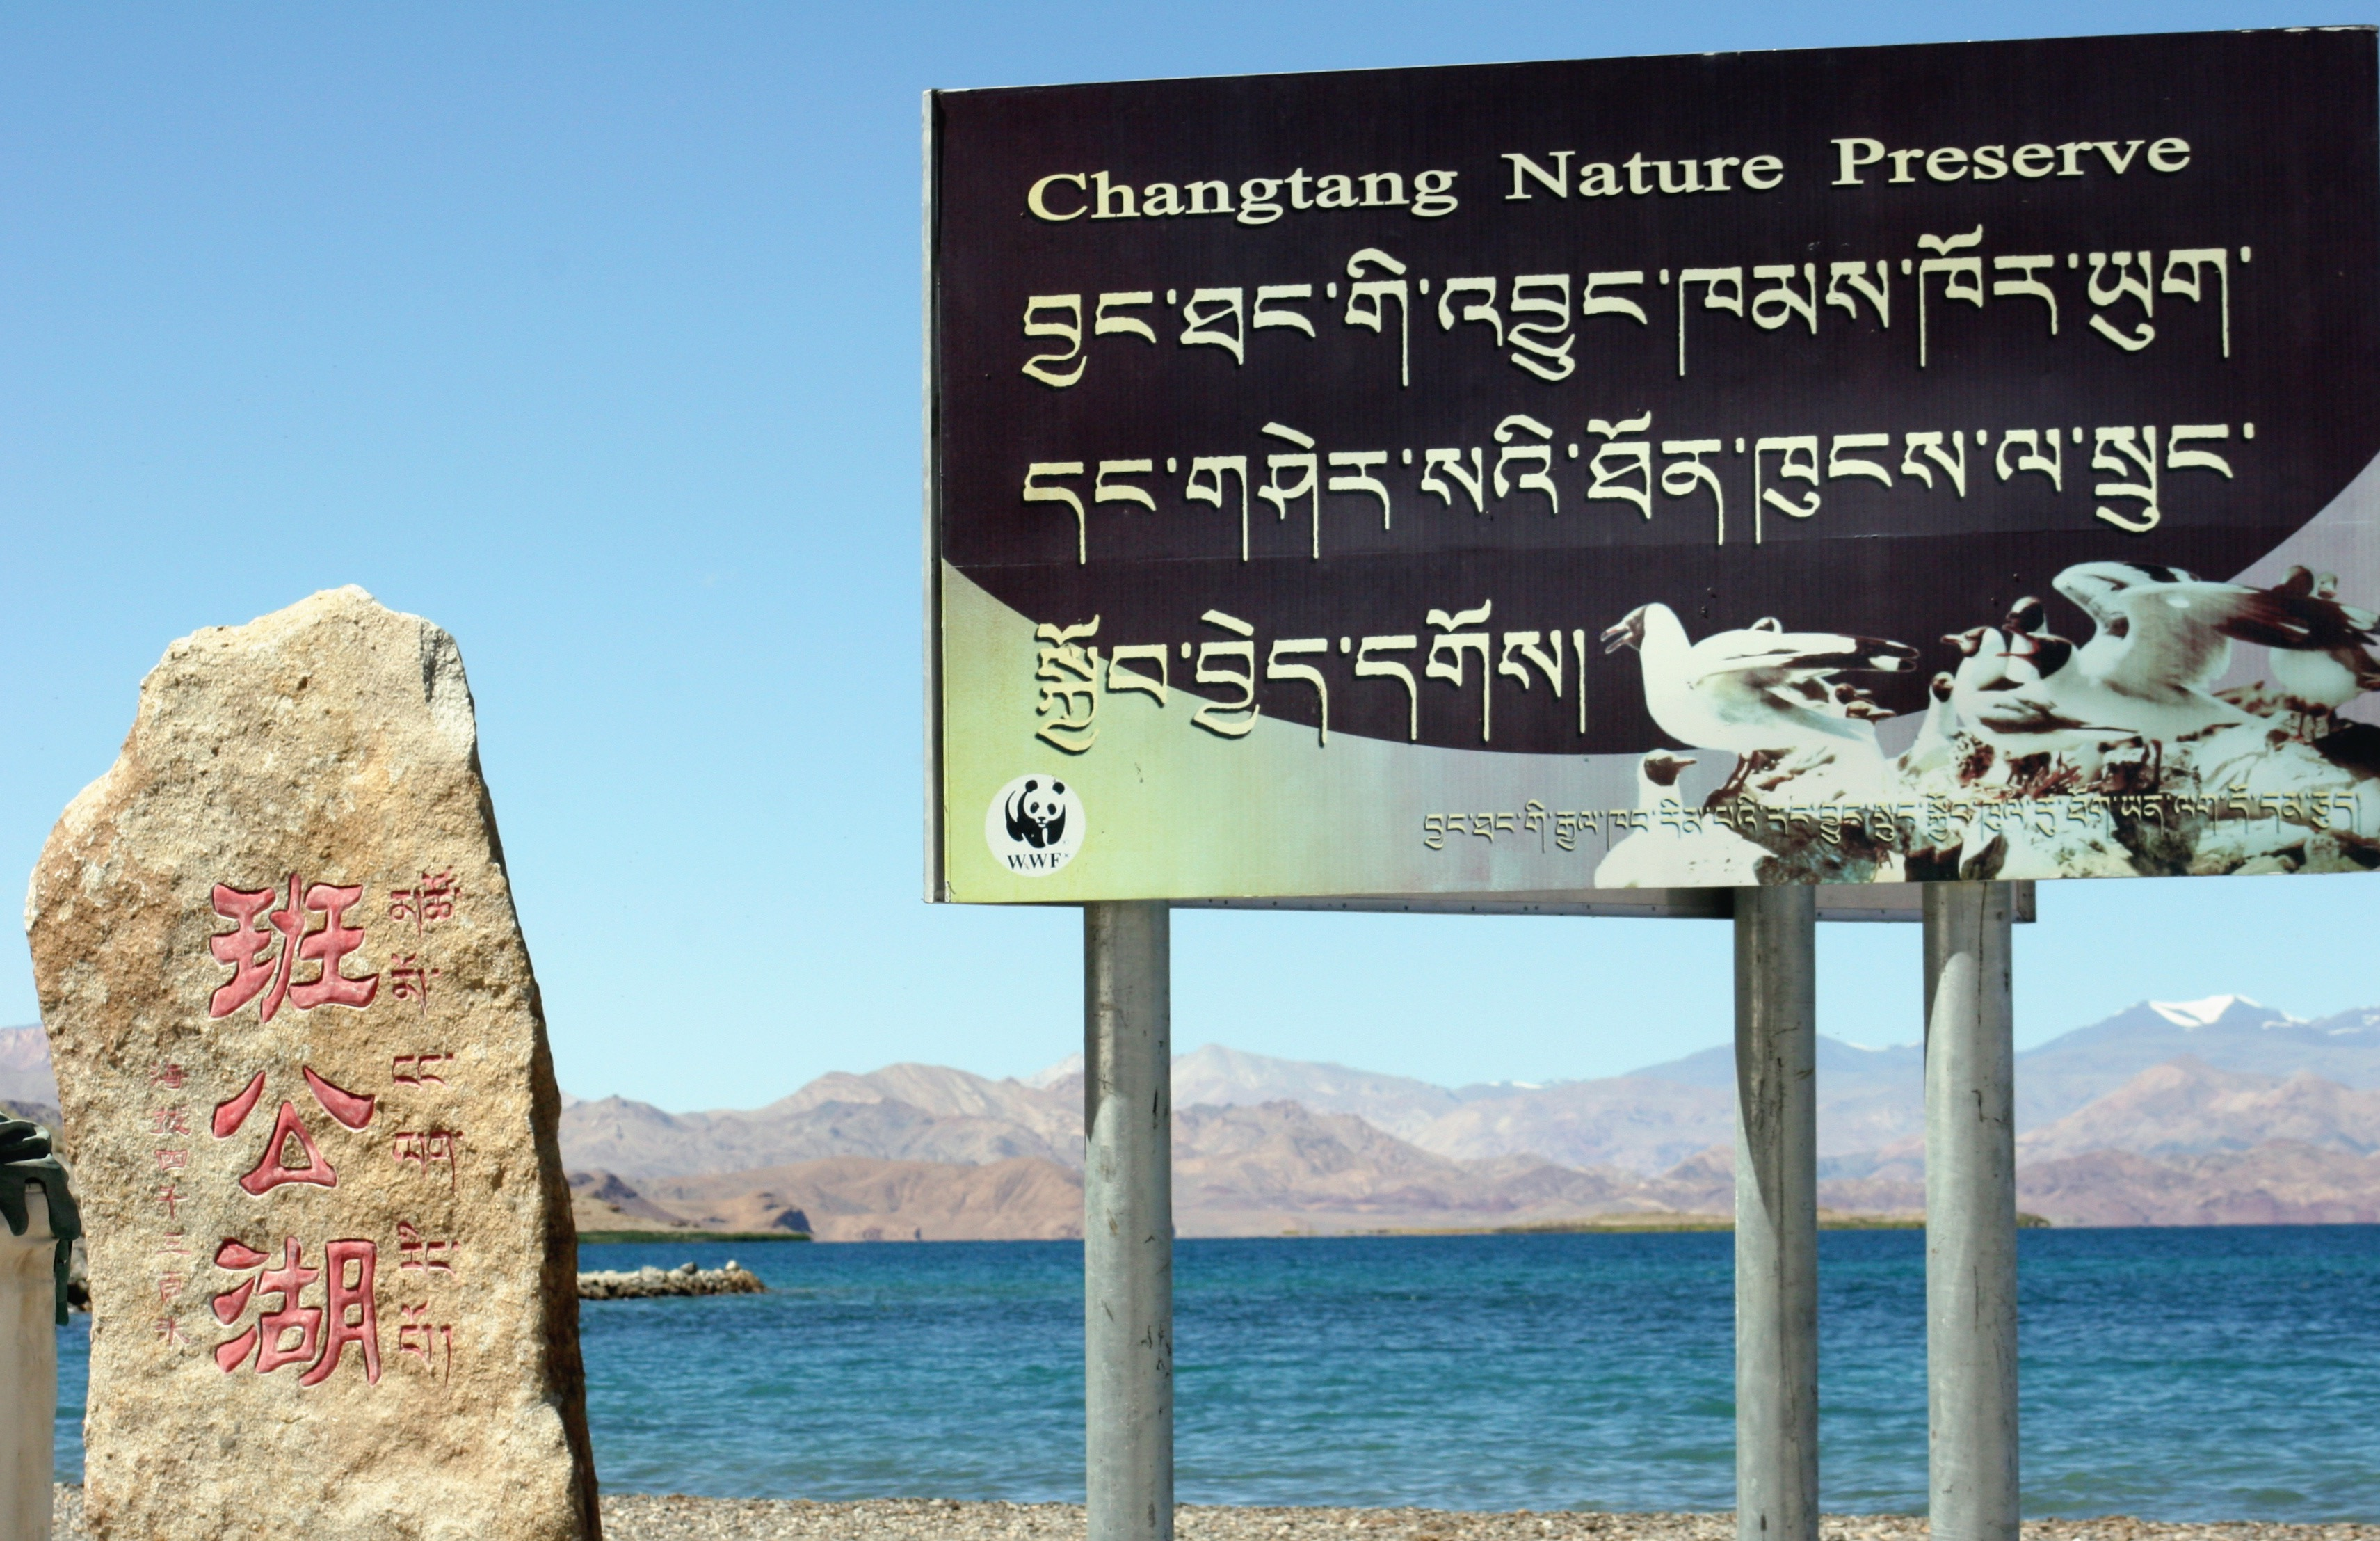 The vast Changtang Nature Preserve has some WWF and Conservation International involvement.